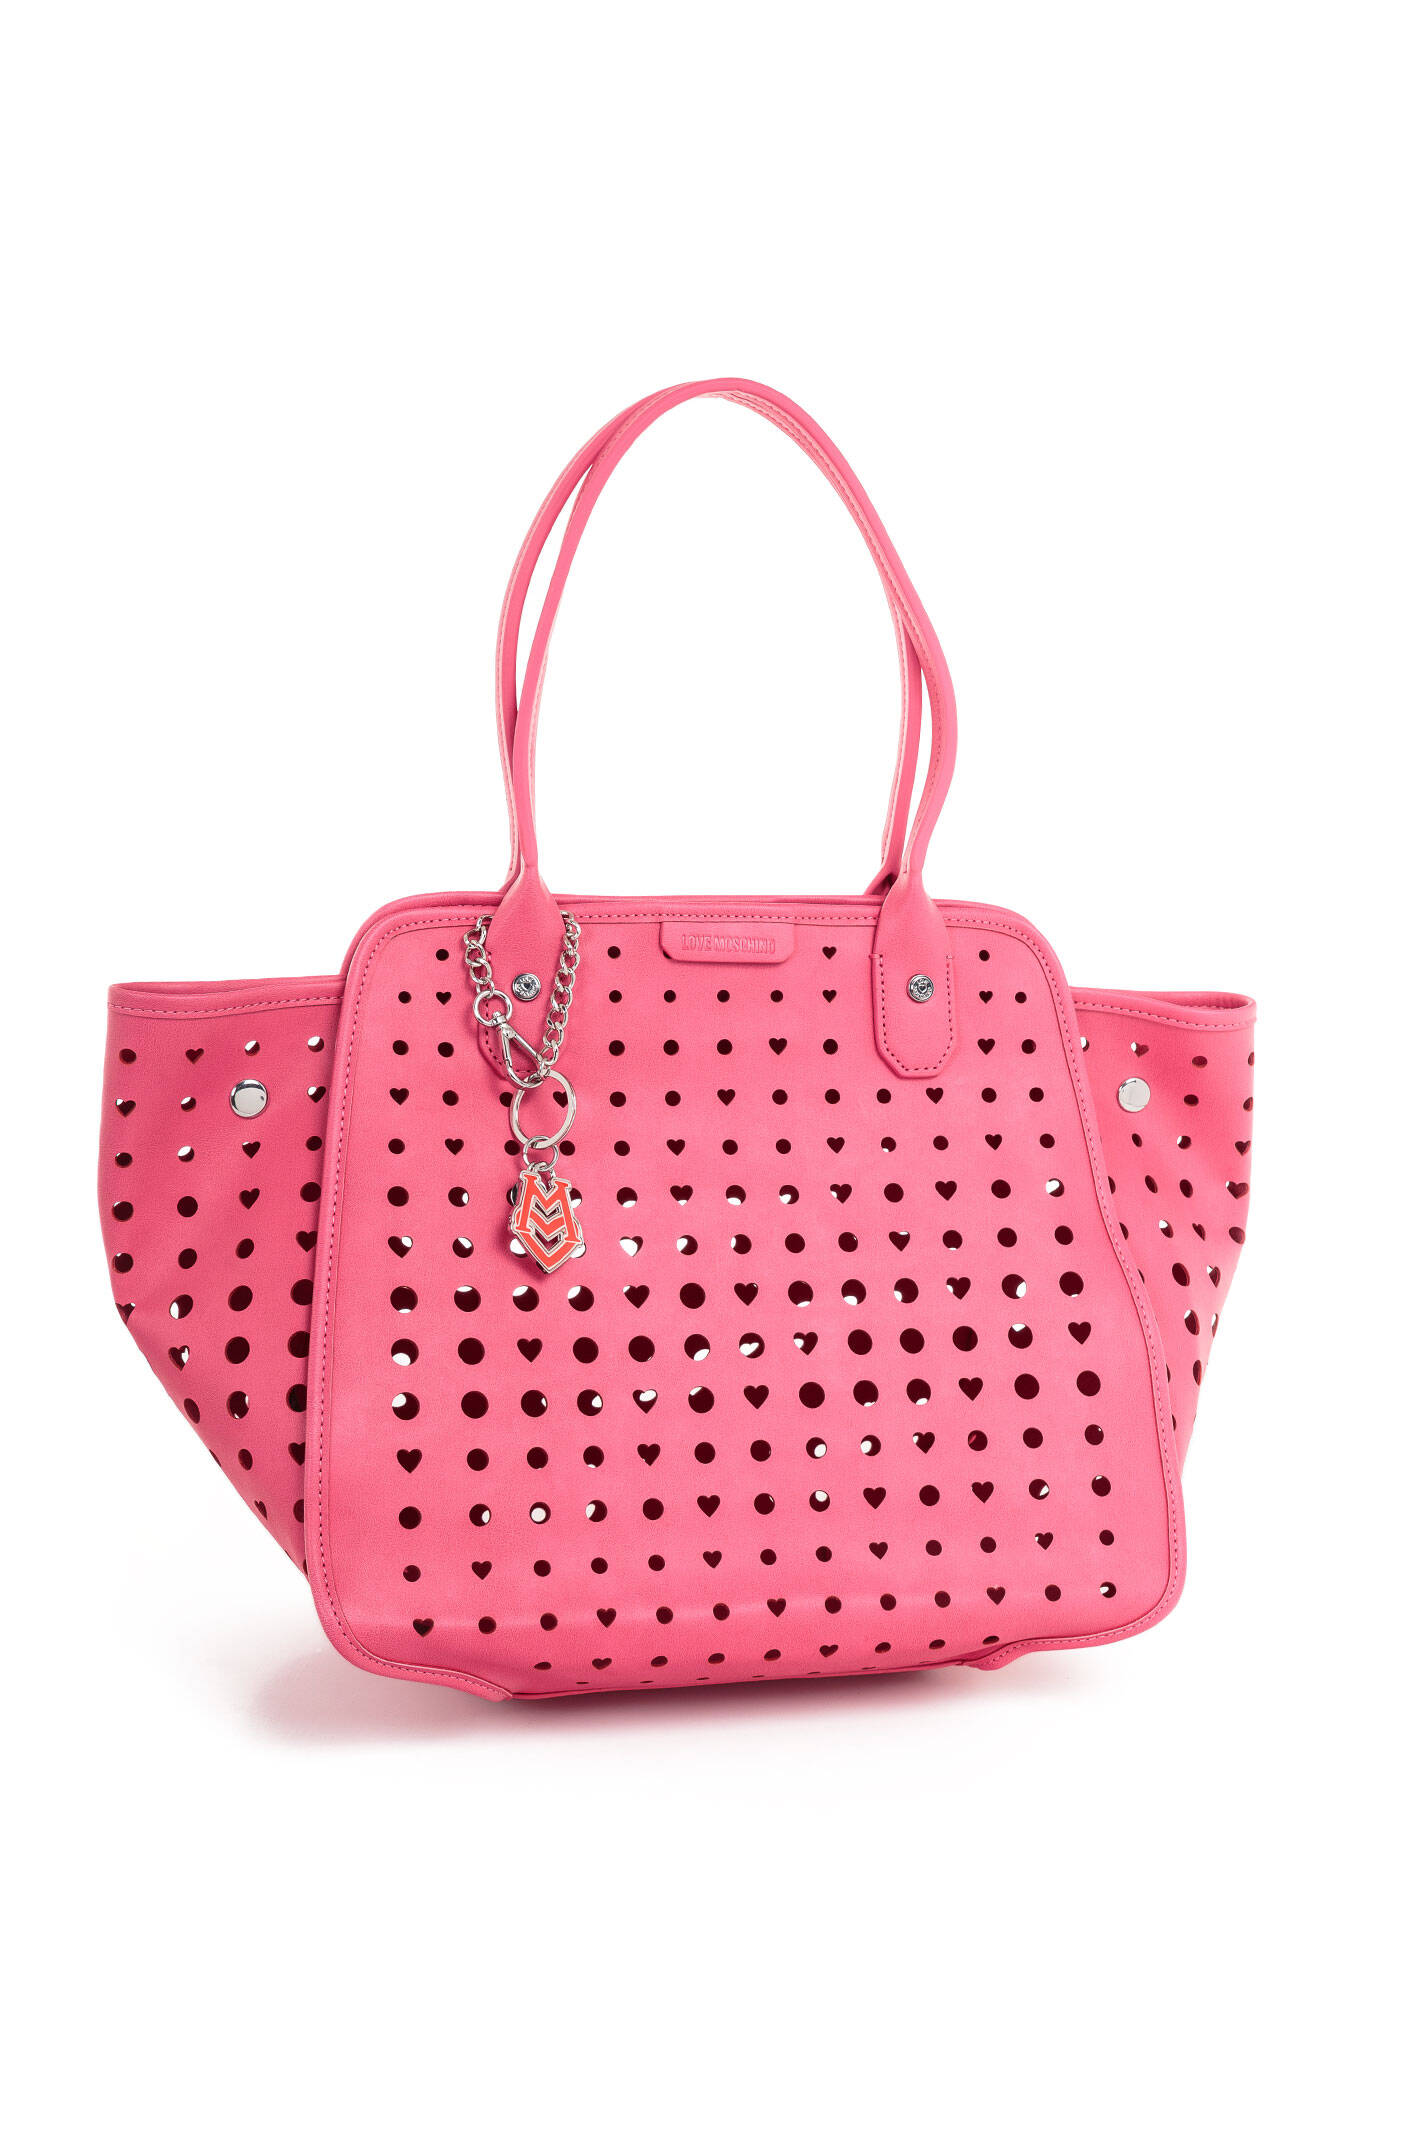 shopper bag love moschino pink bags. Black Bedroom Furniture Sets. Home Design Ideas